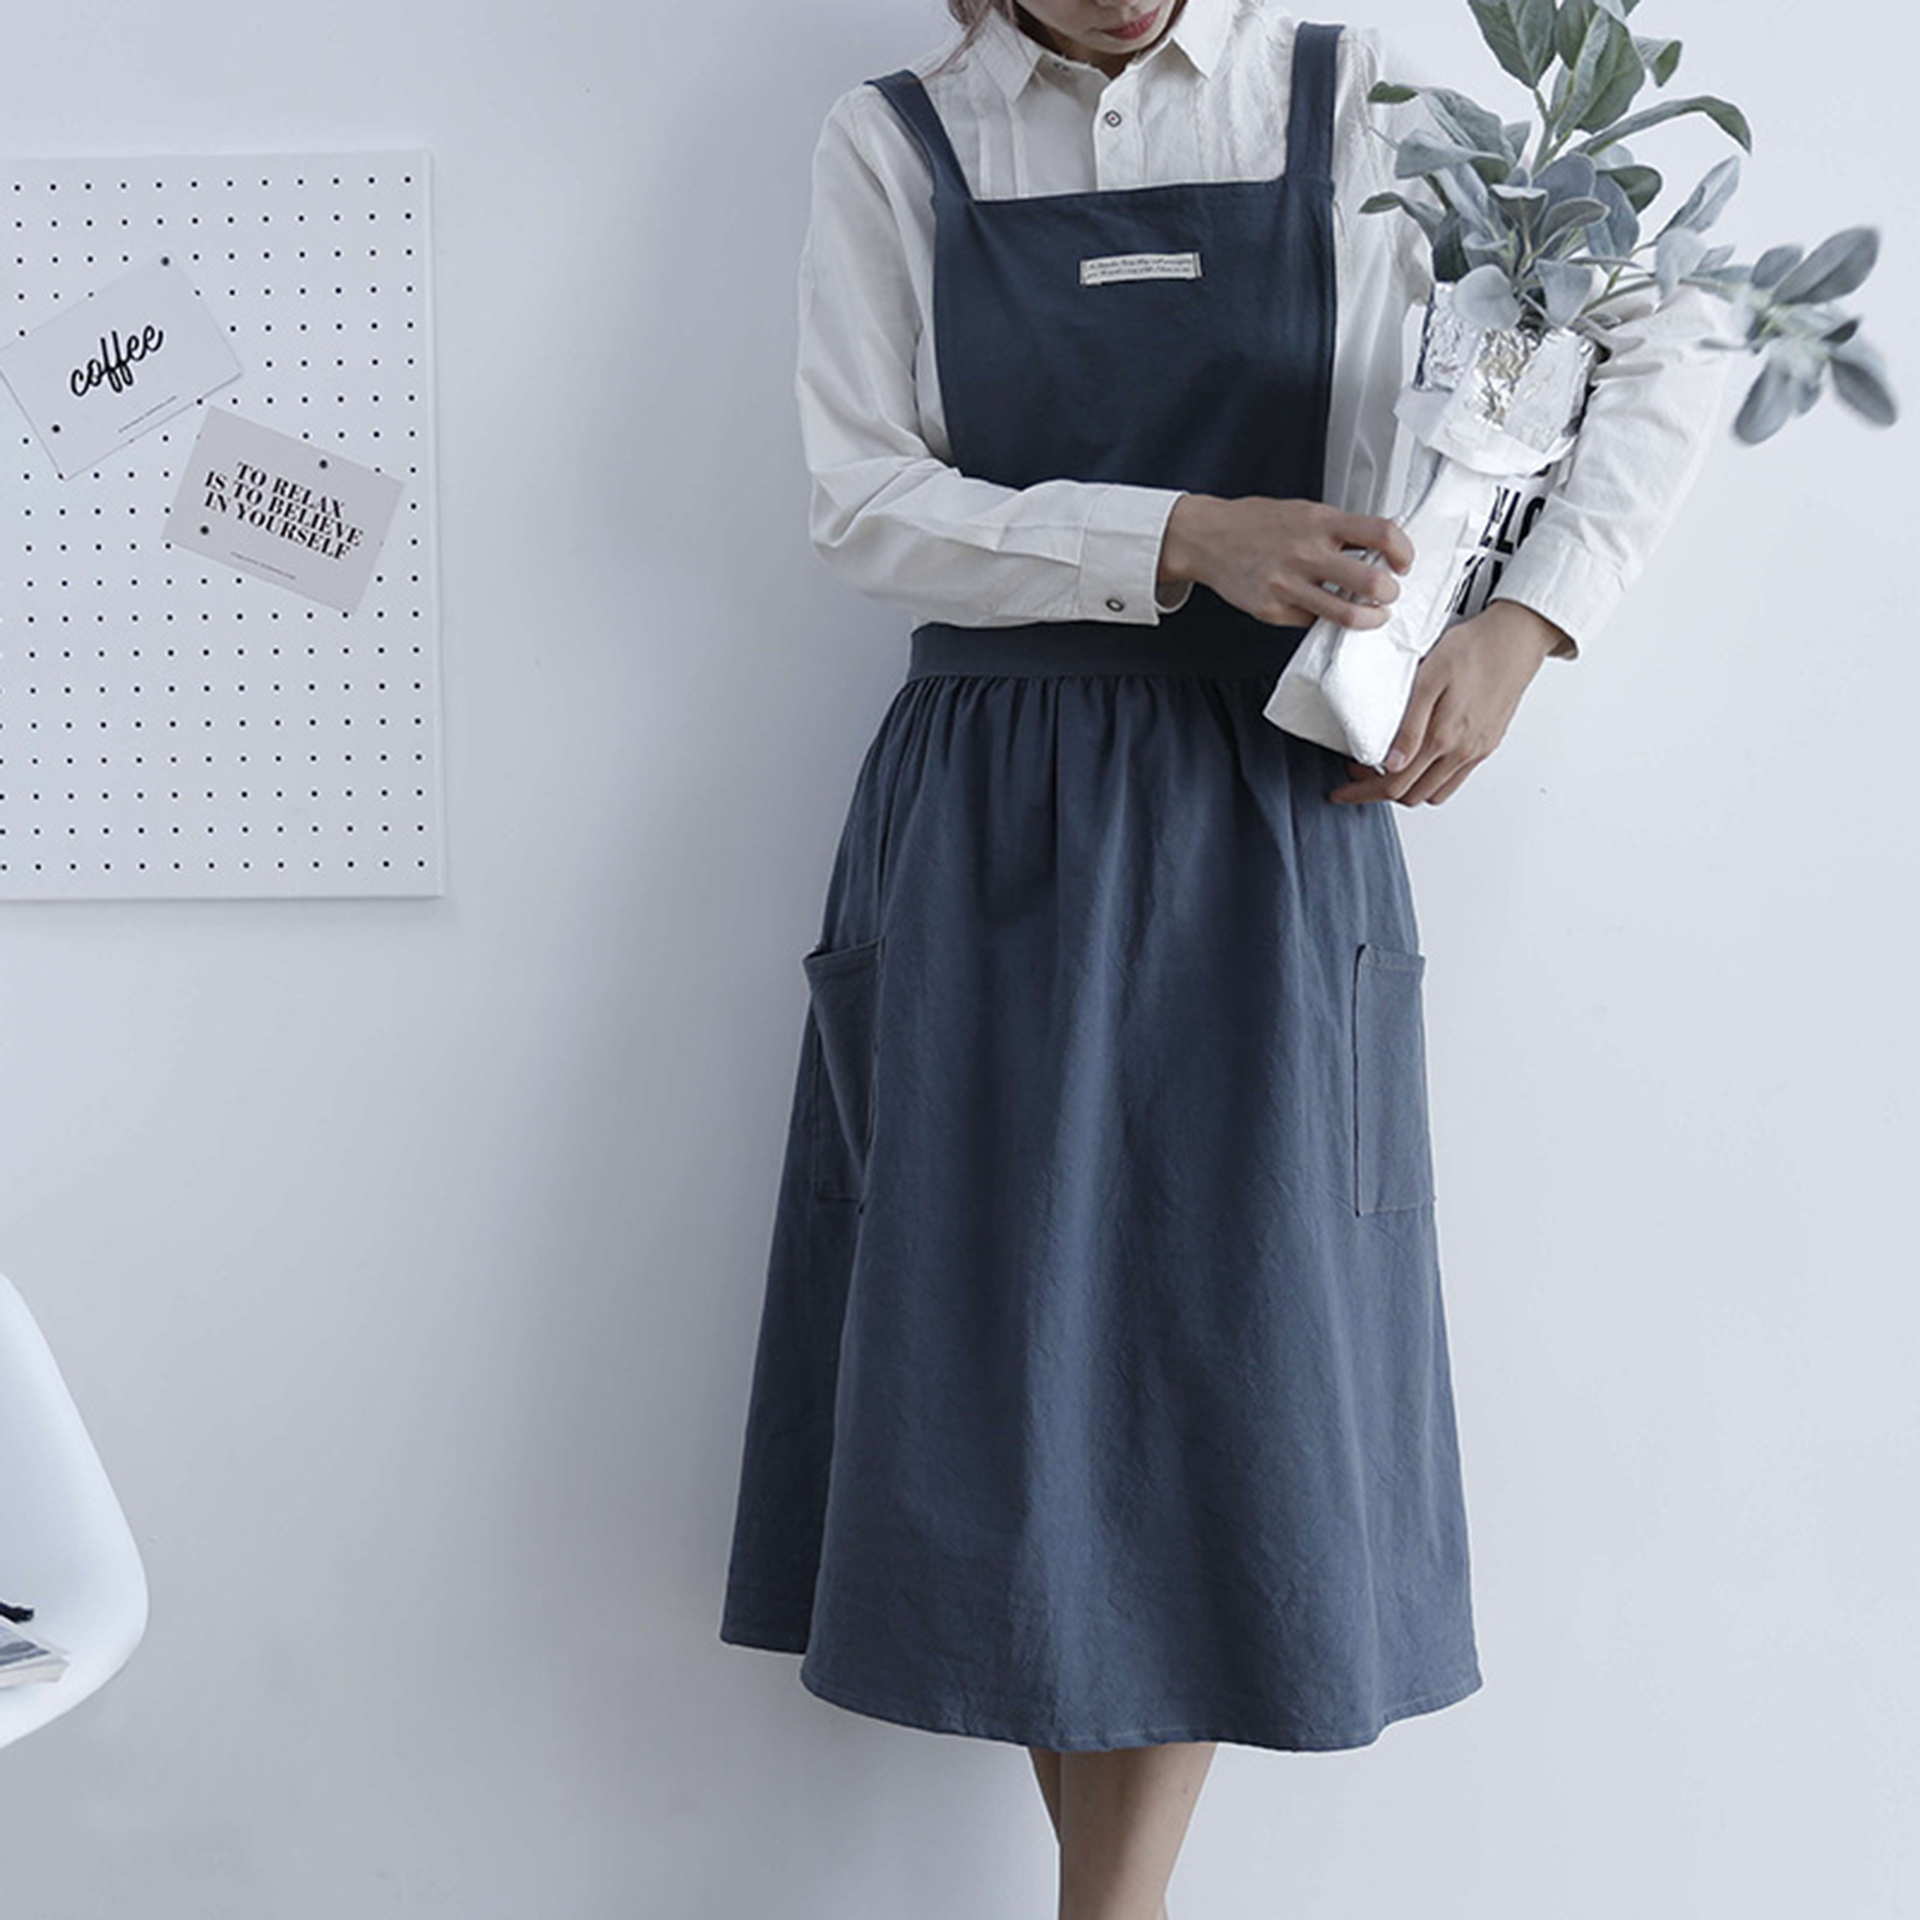 NEW HOT  Literary Pleated Skirt Nordic Cotton Lady Women Apron Korean Pleated Apron Coffee Shop Apron